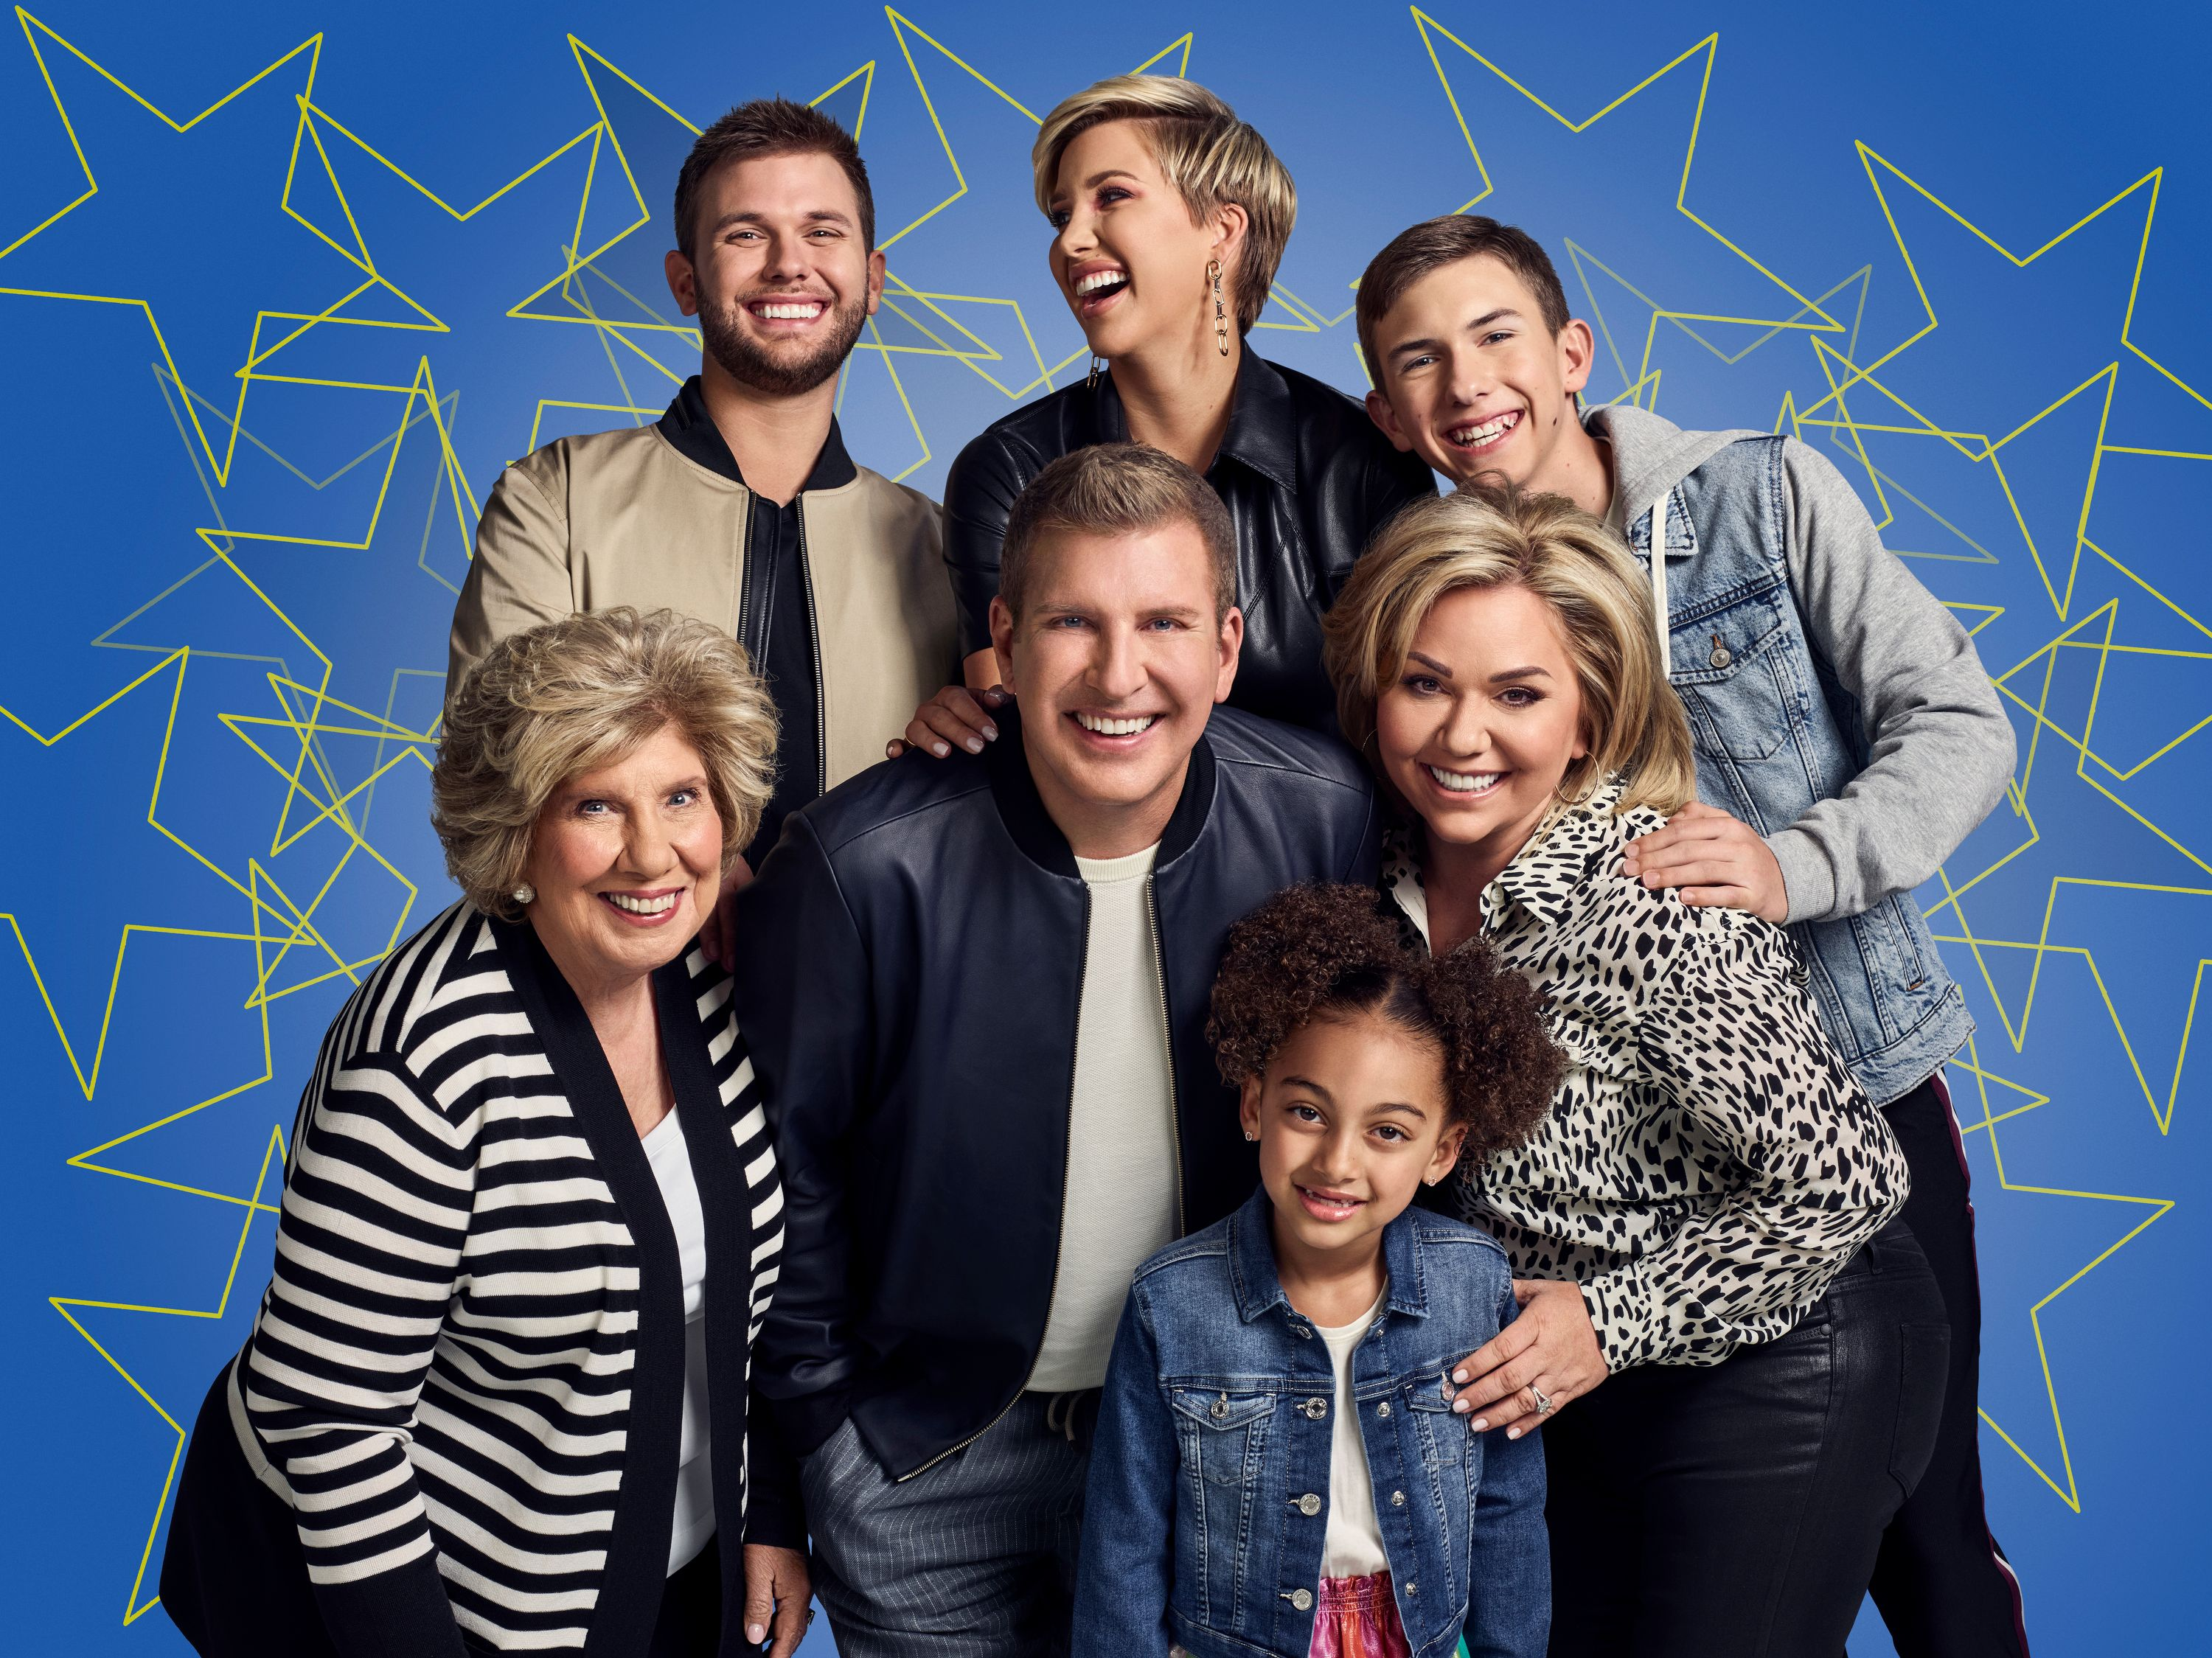 """Faye, Chase, Todd, Savannah, Chloe, Julie, and Grayson Chrisley in a season 8 """"Chrisley Knows Best"""" promo image 